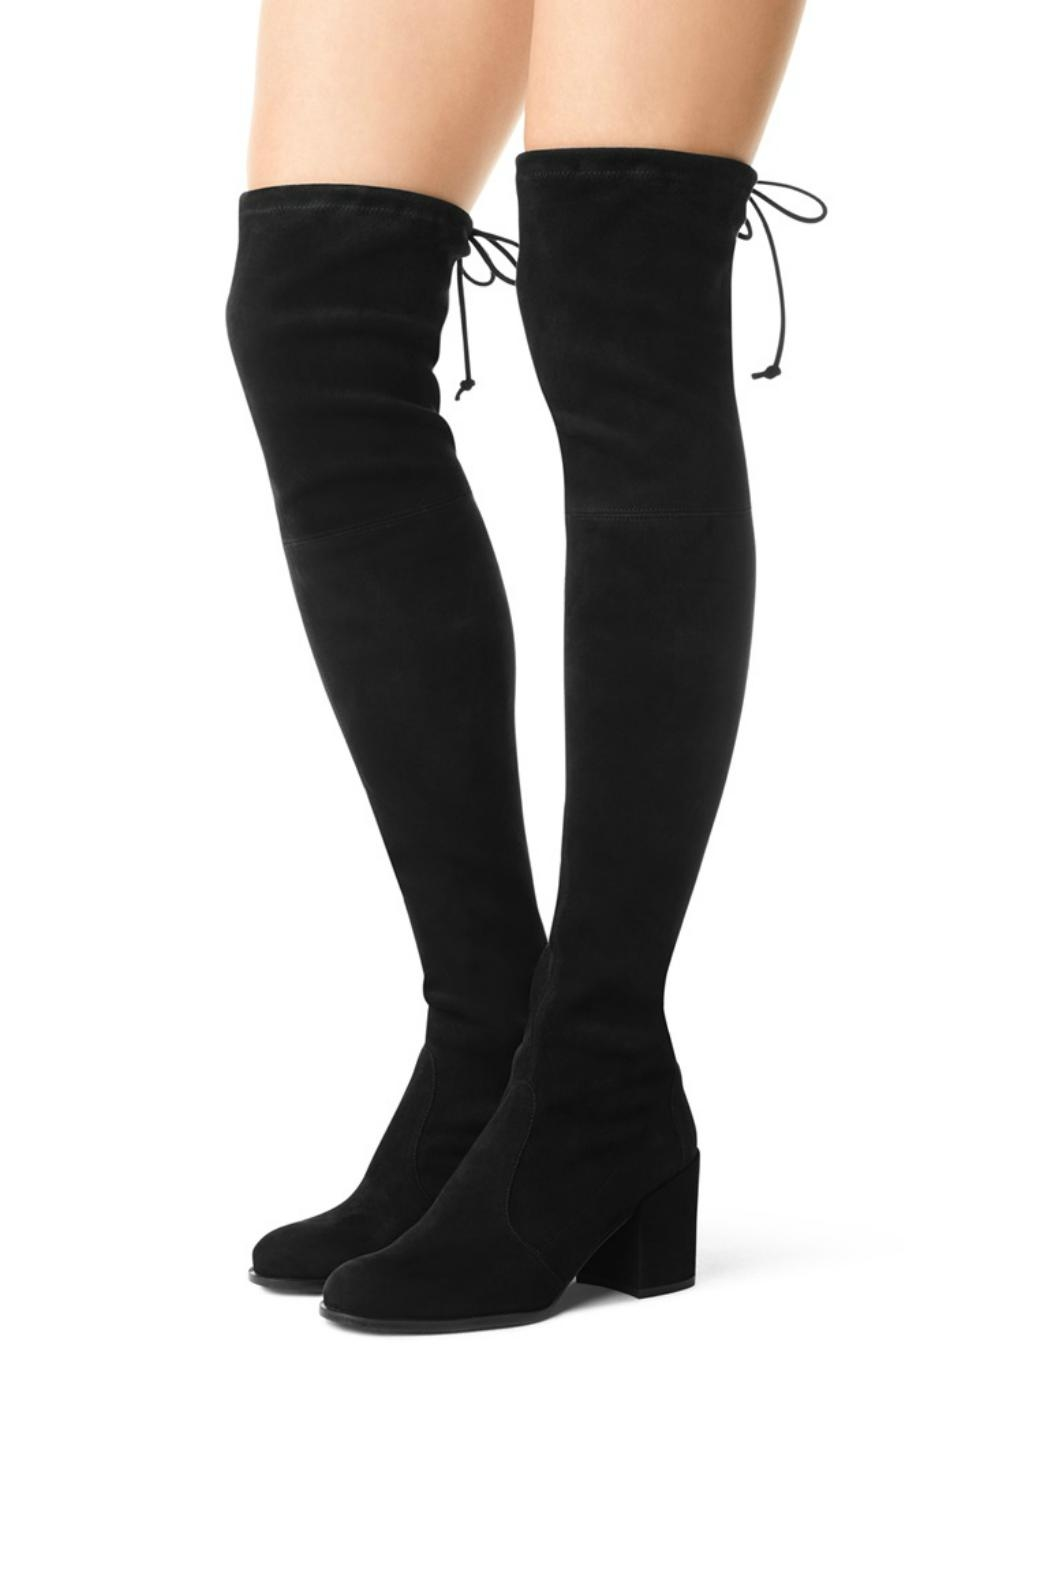 Tieland Thigh High Boot